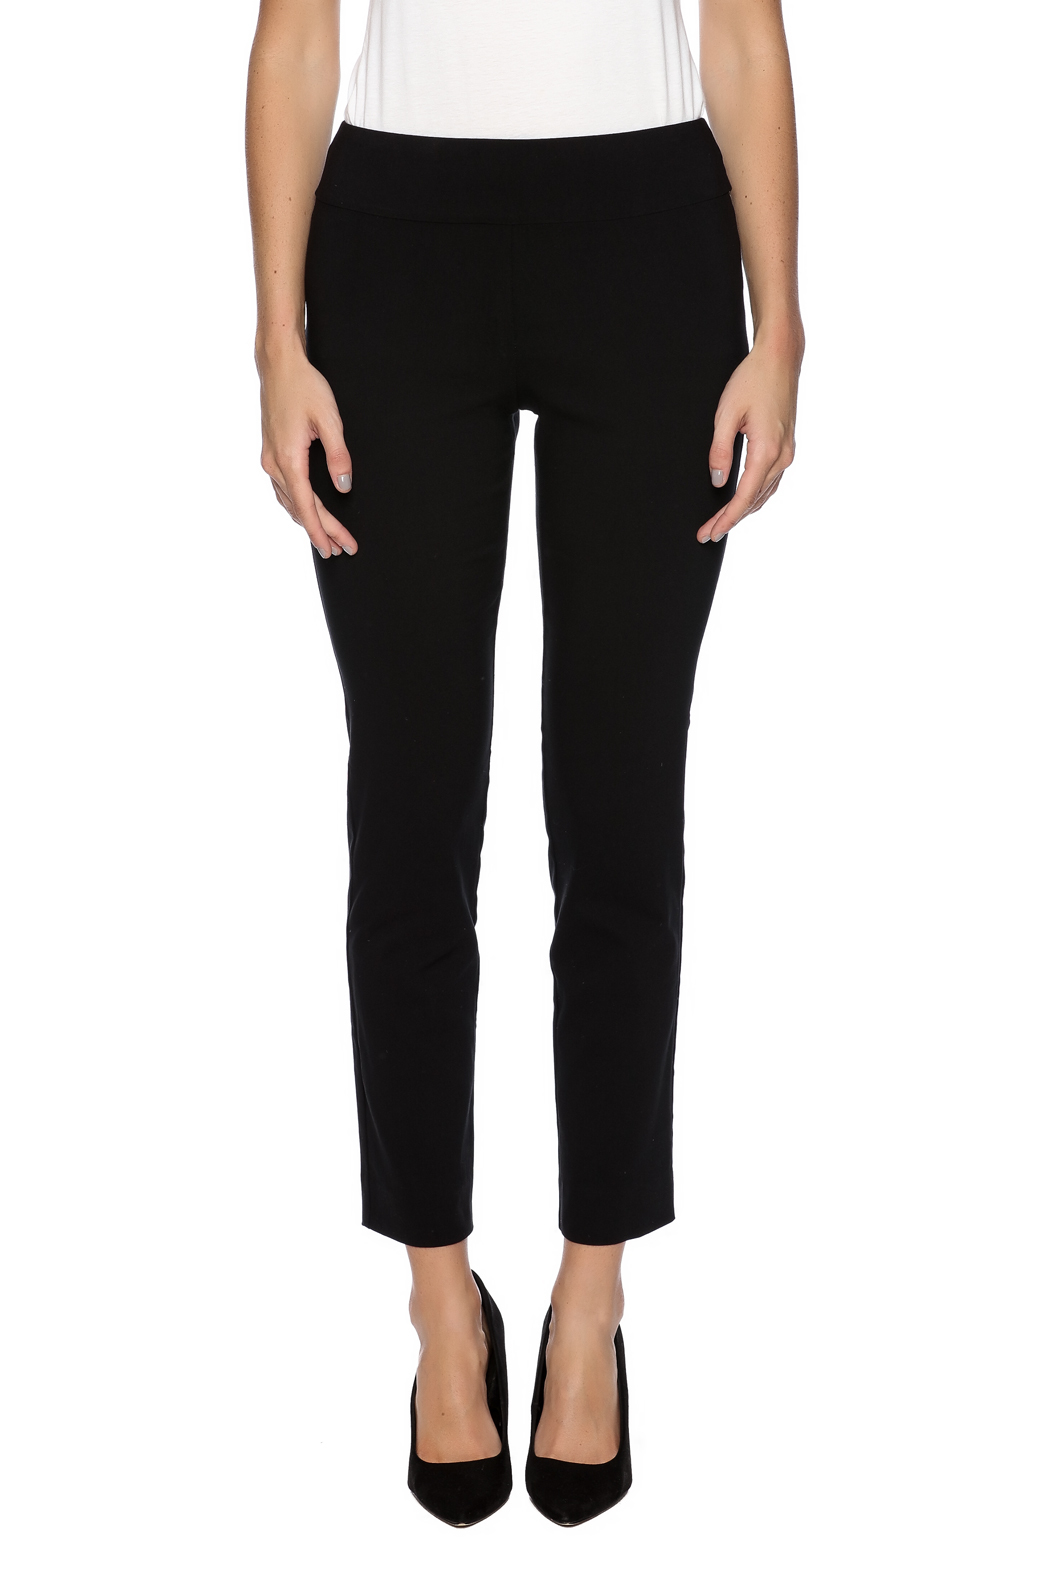 Krazy Larry Pull On Dress Pants - Side Cropped Image